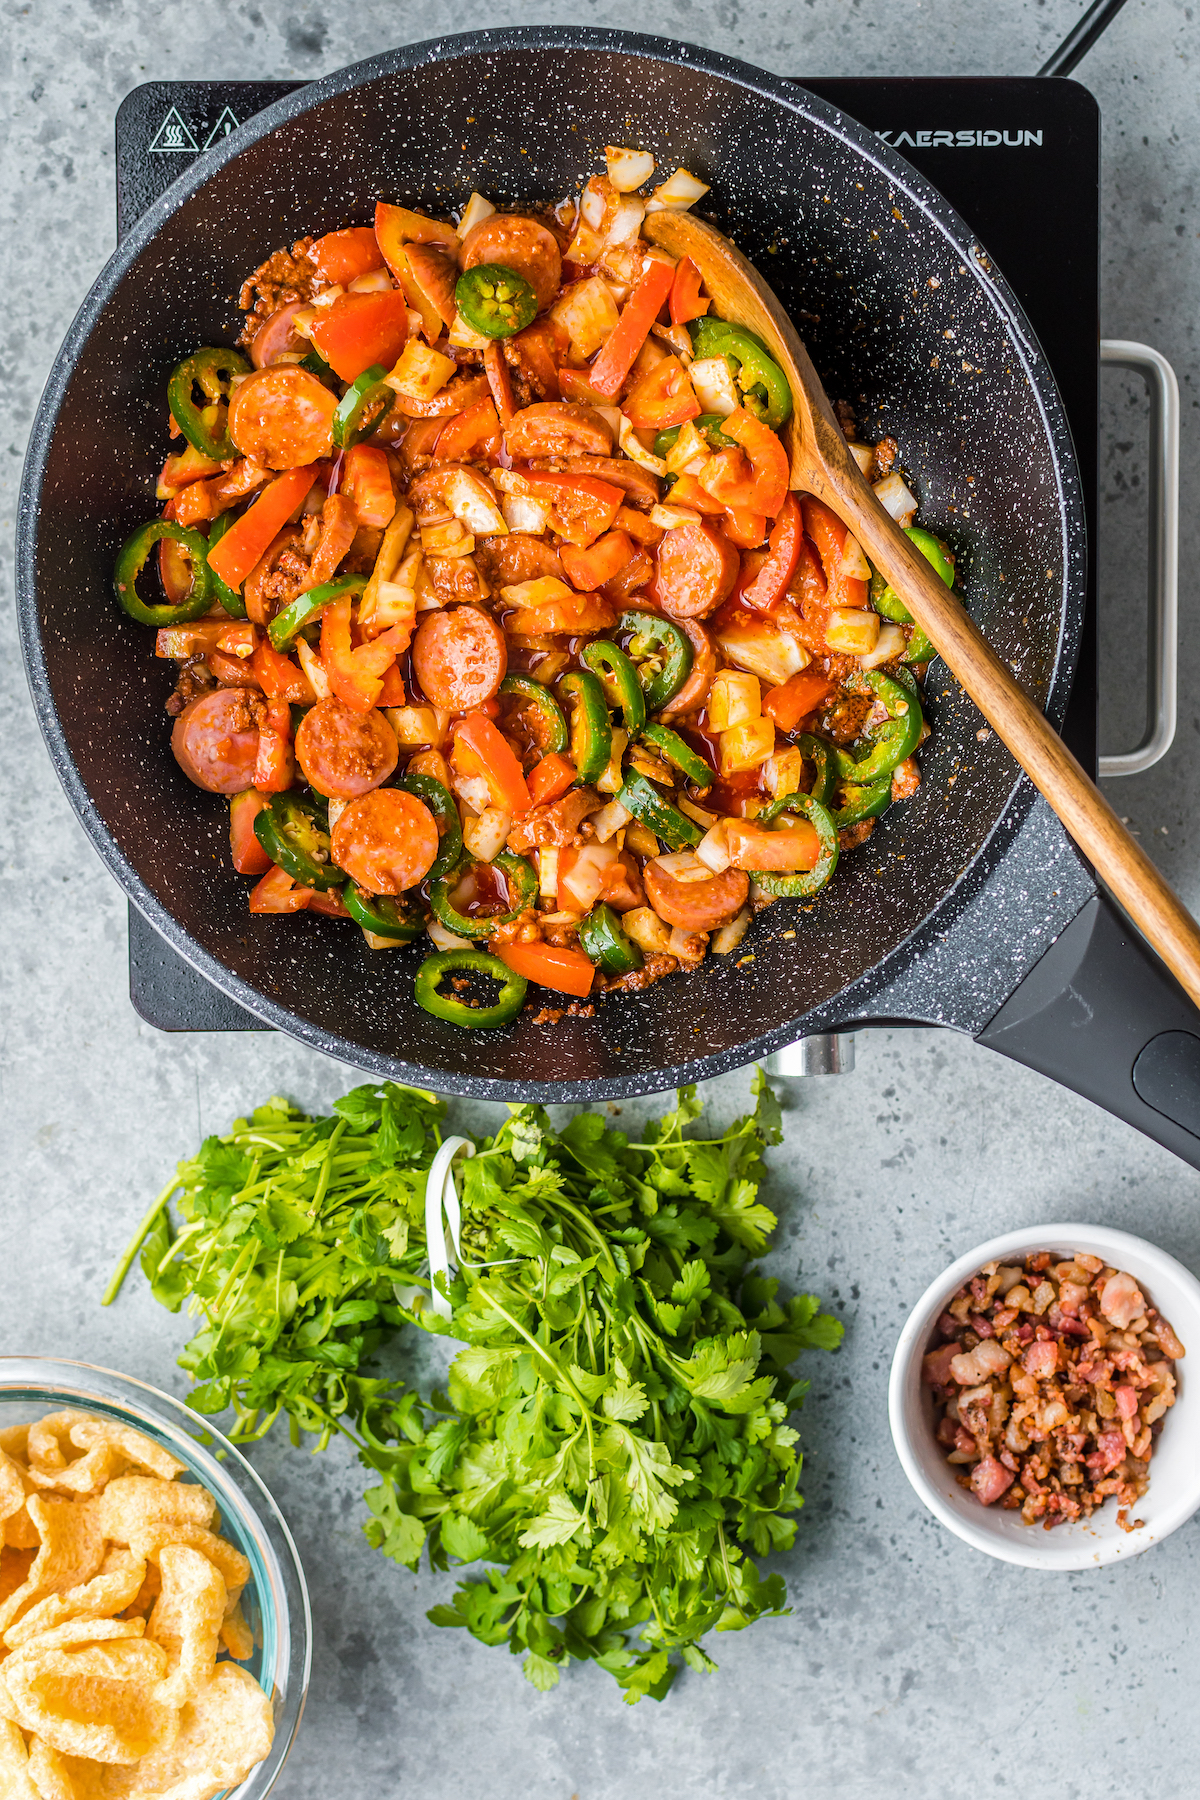 Sausage and vegetables being sautéed in a pan.